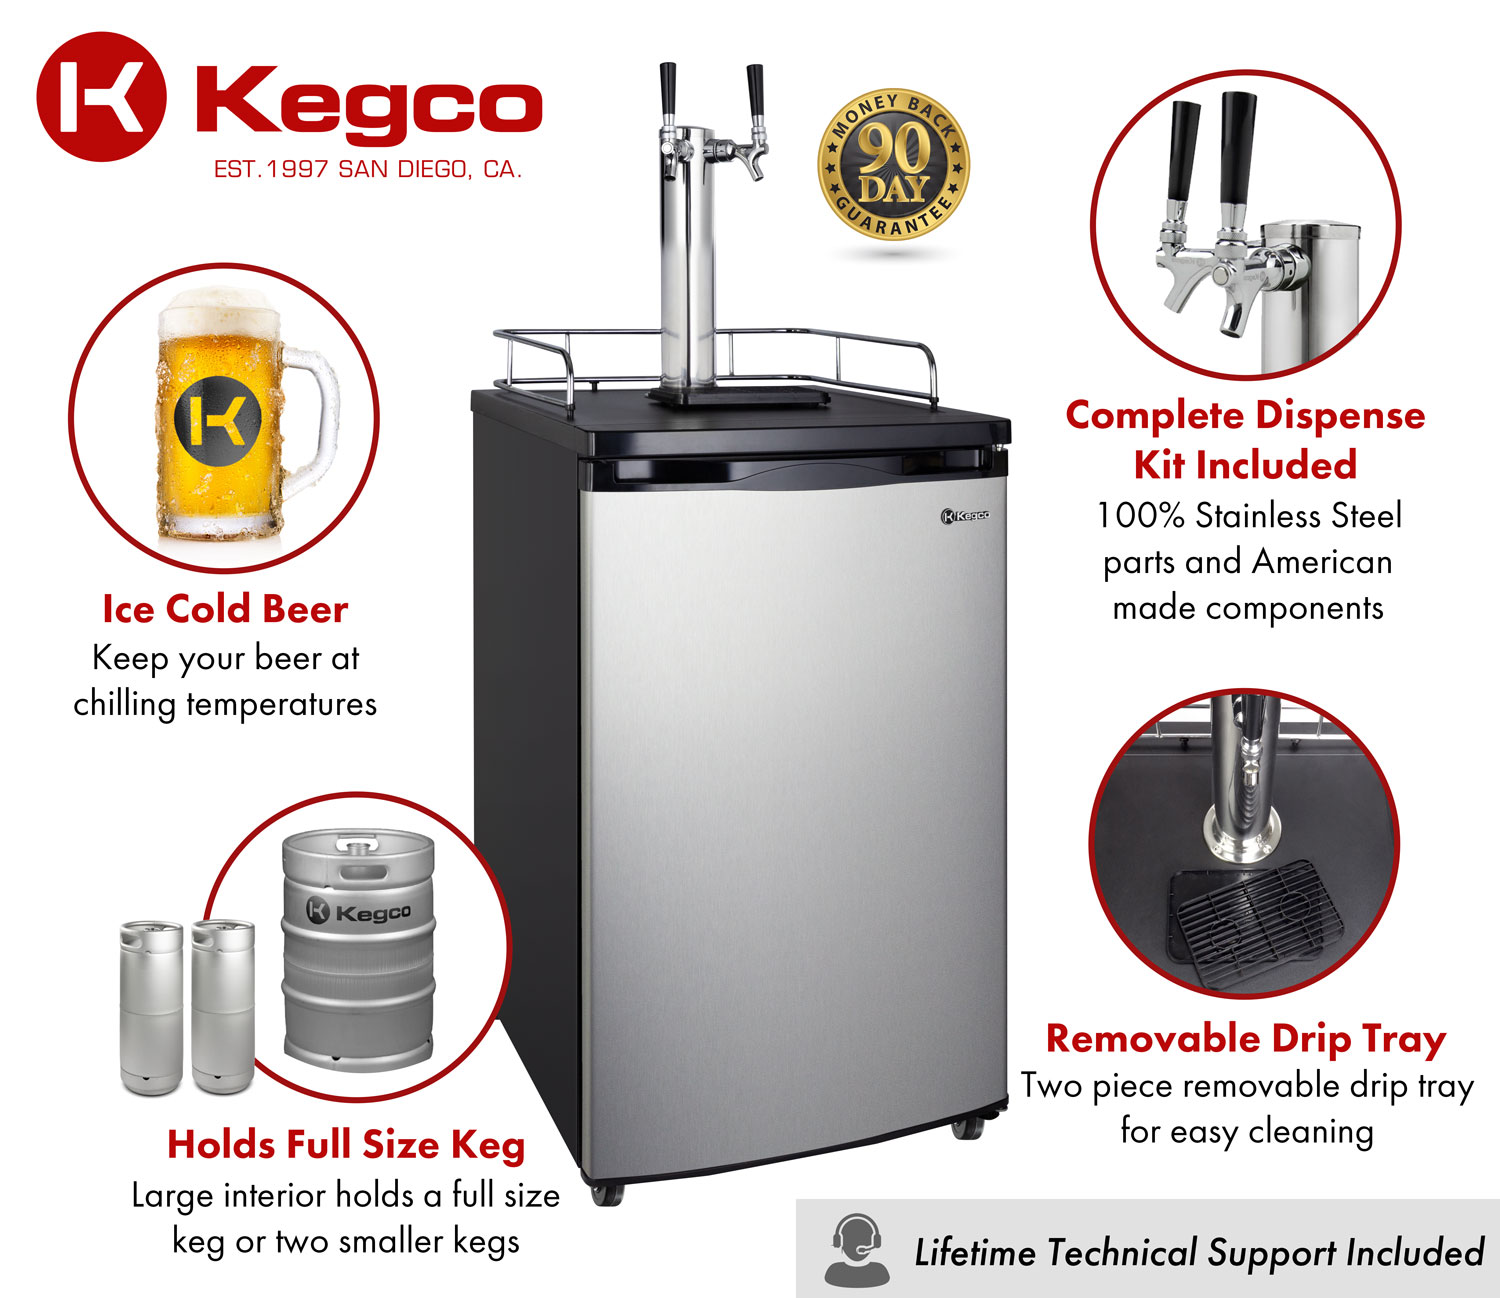 All stainless contact single tap dispense system includes tower, regulator, keg coupler, and CO2 tank